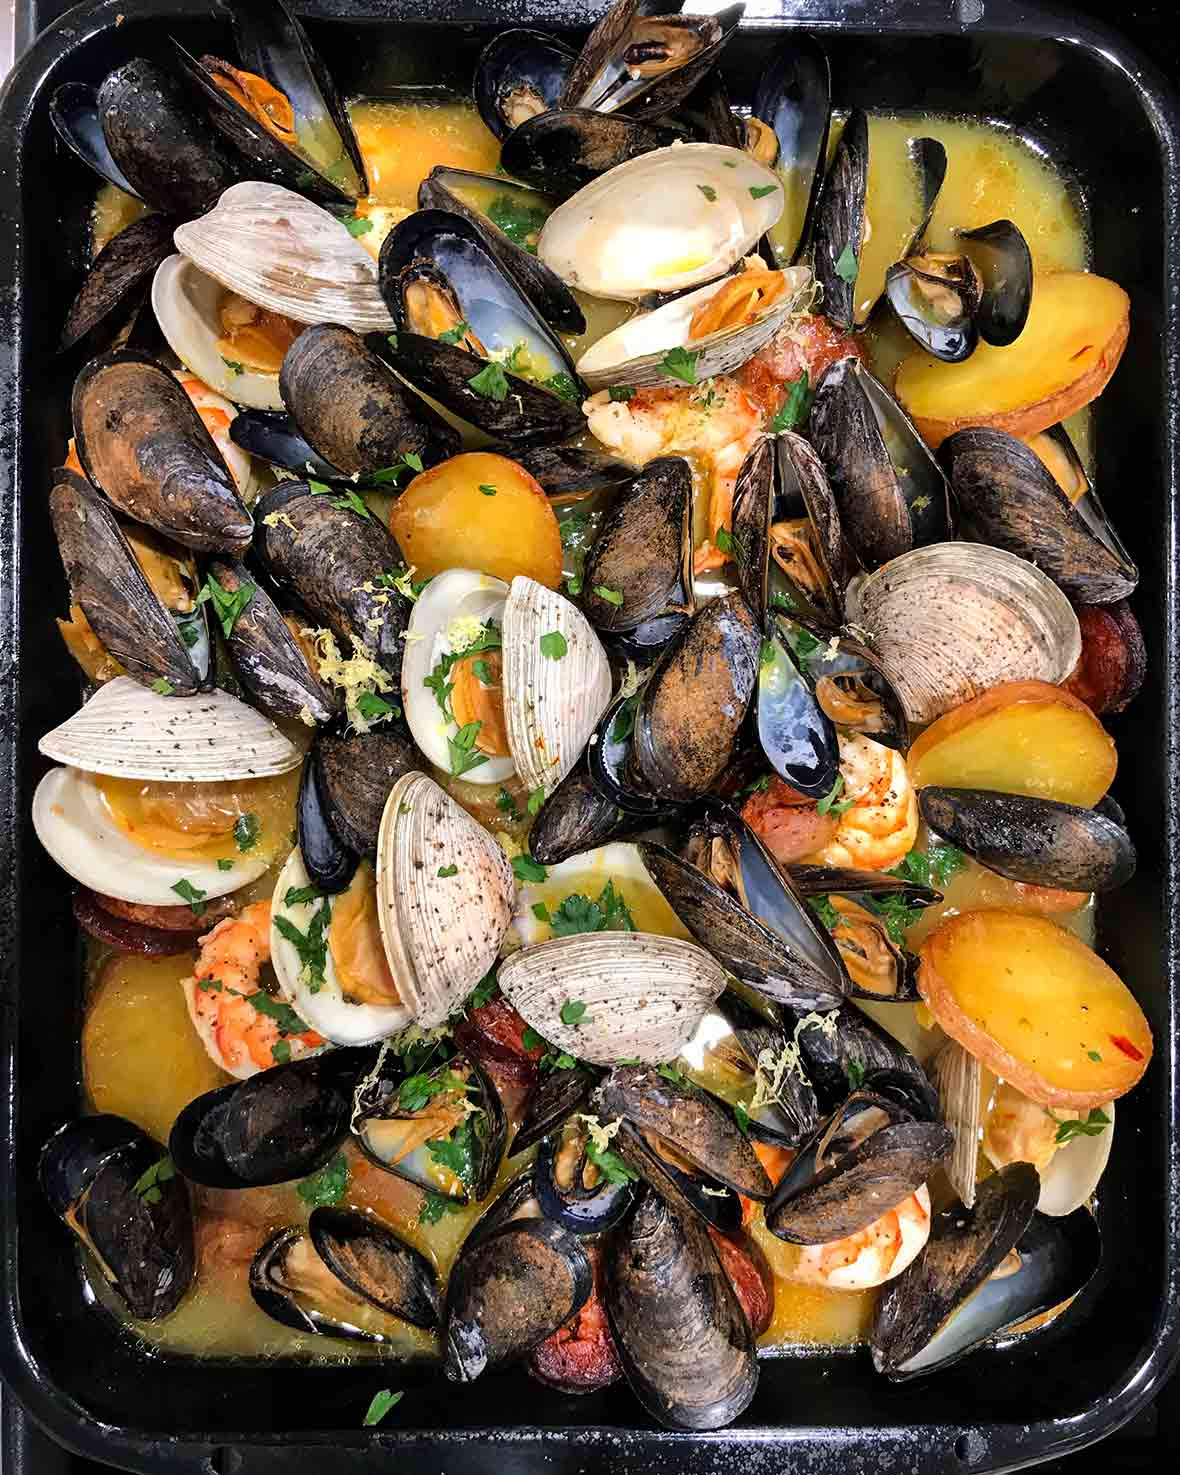 Pan of seafood and chorizo stew with clams, mussels, shrimp, and potatoes in a saffron broth